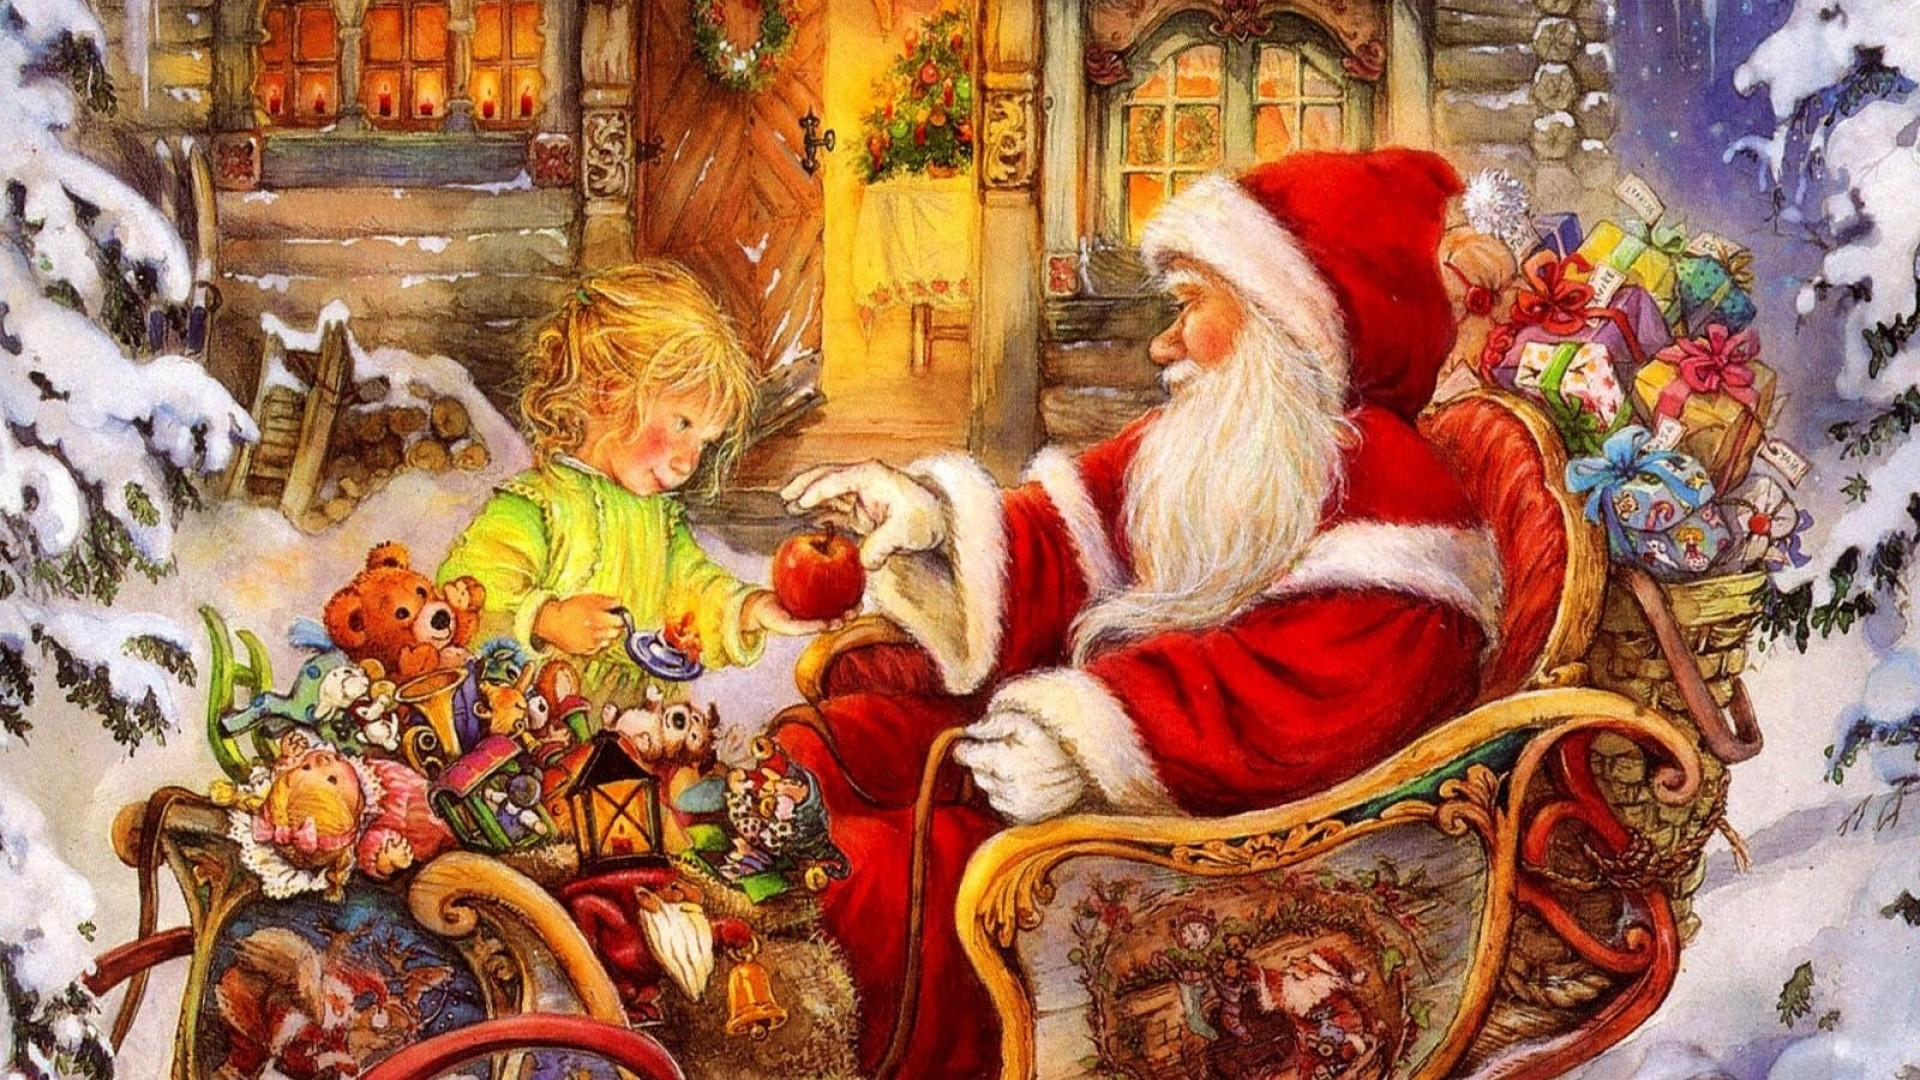 1920x1080  Wallpaper santa claus, sleigh, baby, apple, gifts, holiday,  christmas